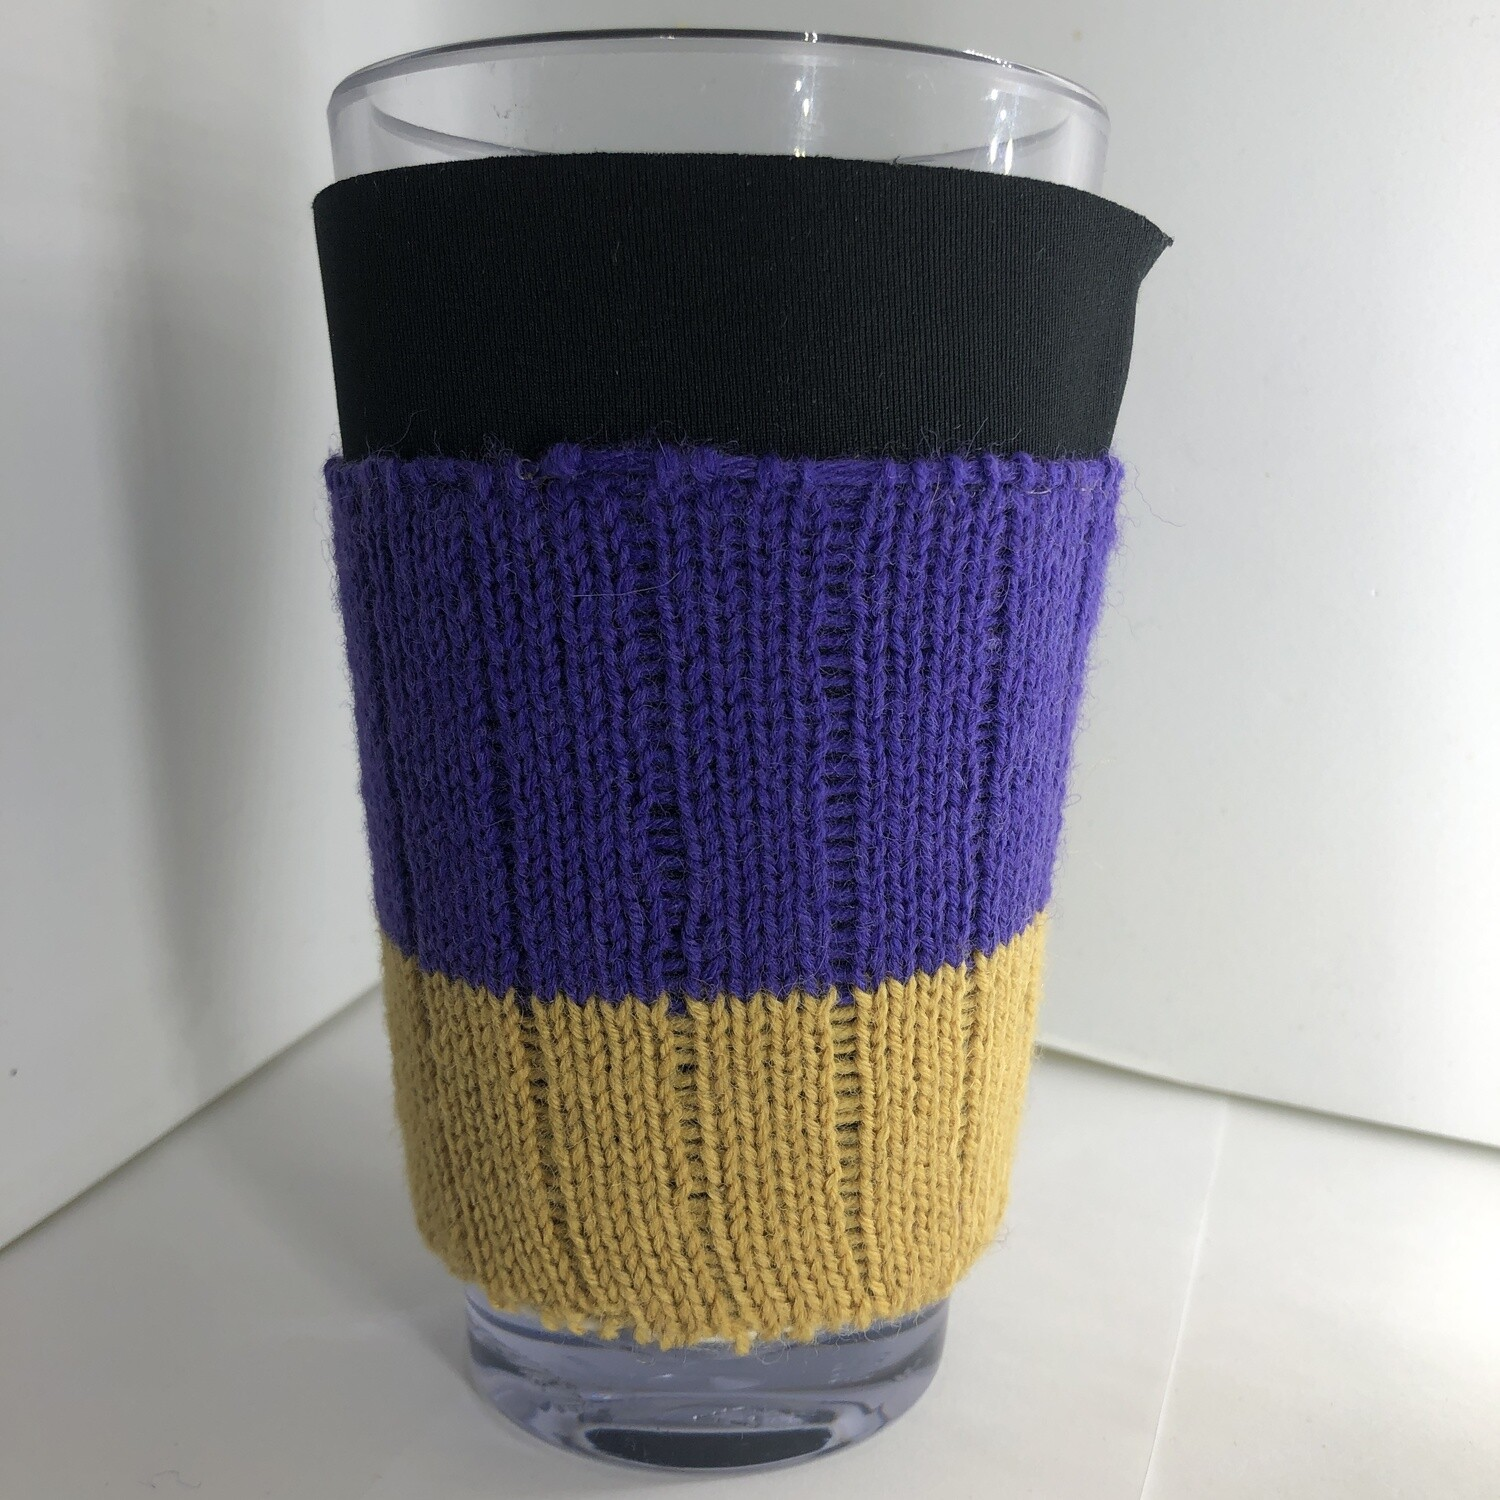 Purple & Gold Koozies - Go Vikings!